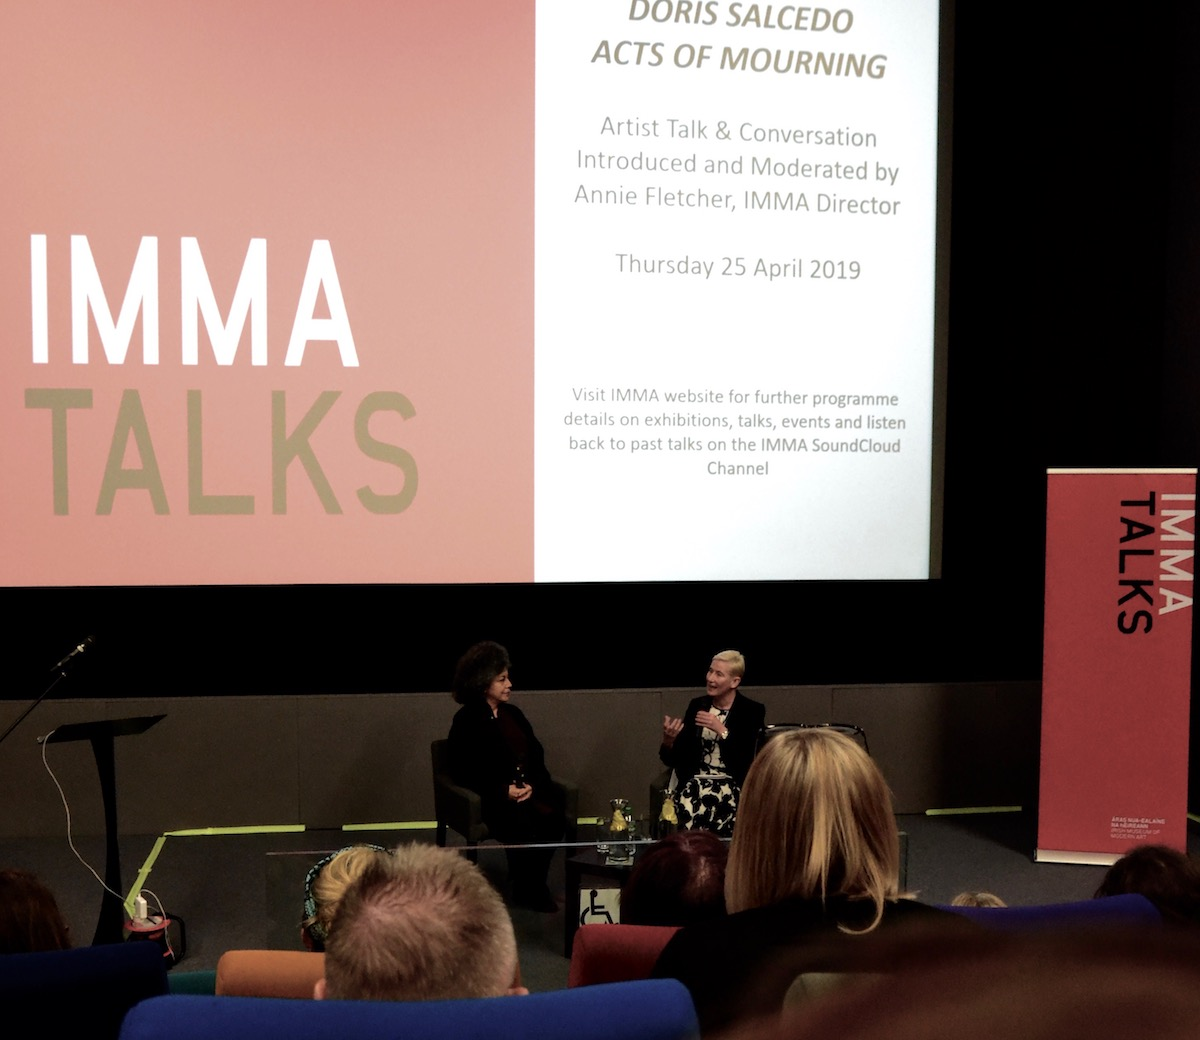 Doris Salcedo in conversation with Annie Fletcher, IMMA Talk at the Lighthouse Cinema. Photography: Dahlia Dreven.